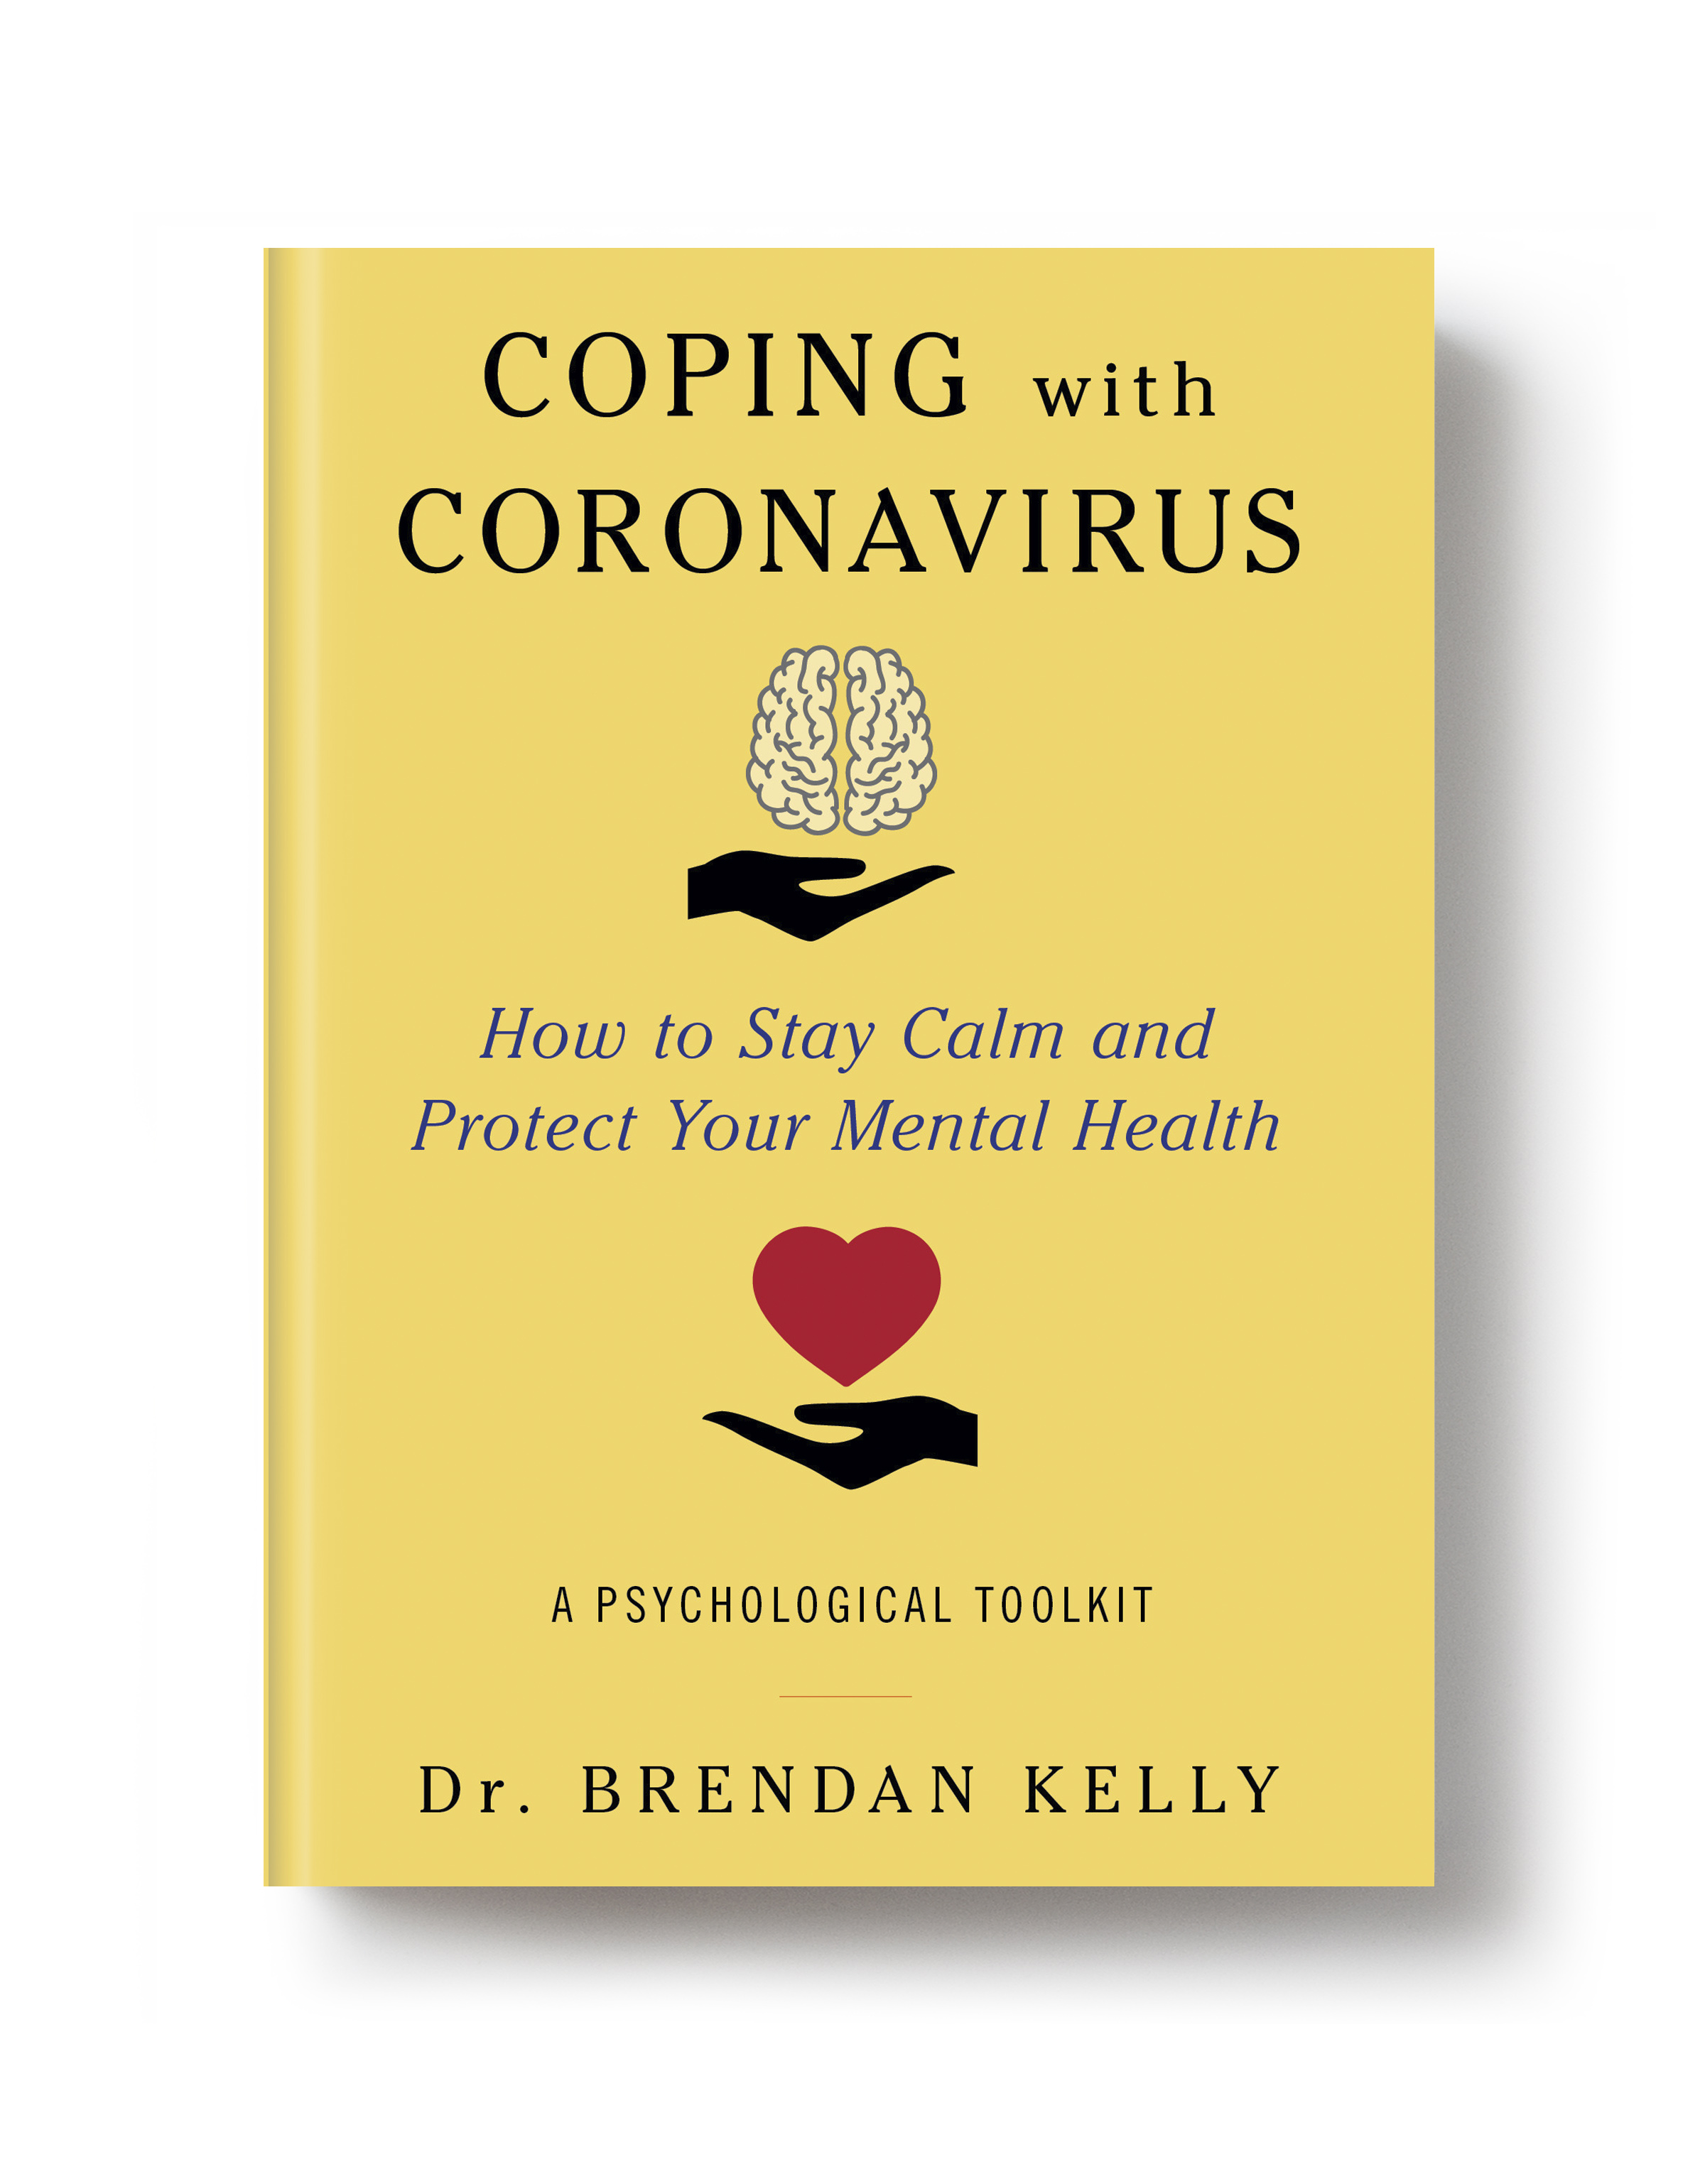 AVAILABLE NOW: Coping with Coronavirus